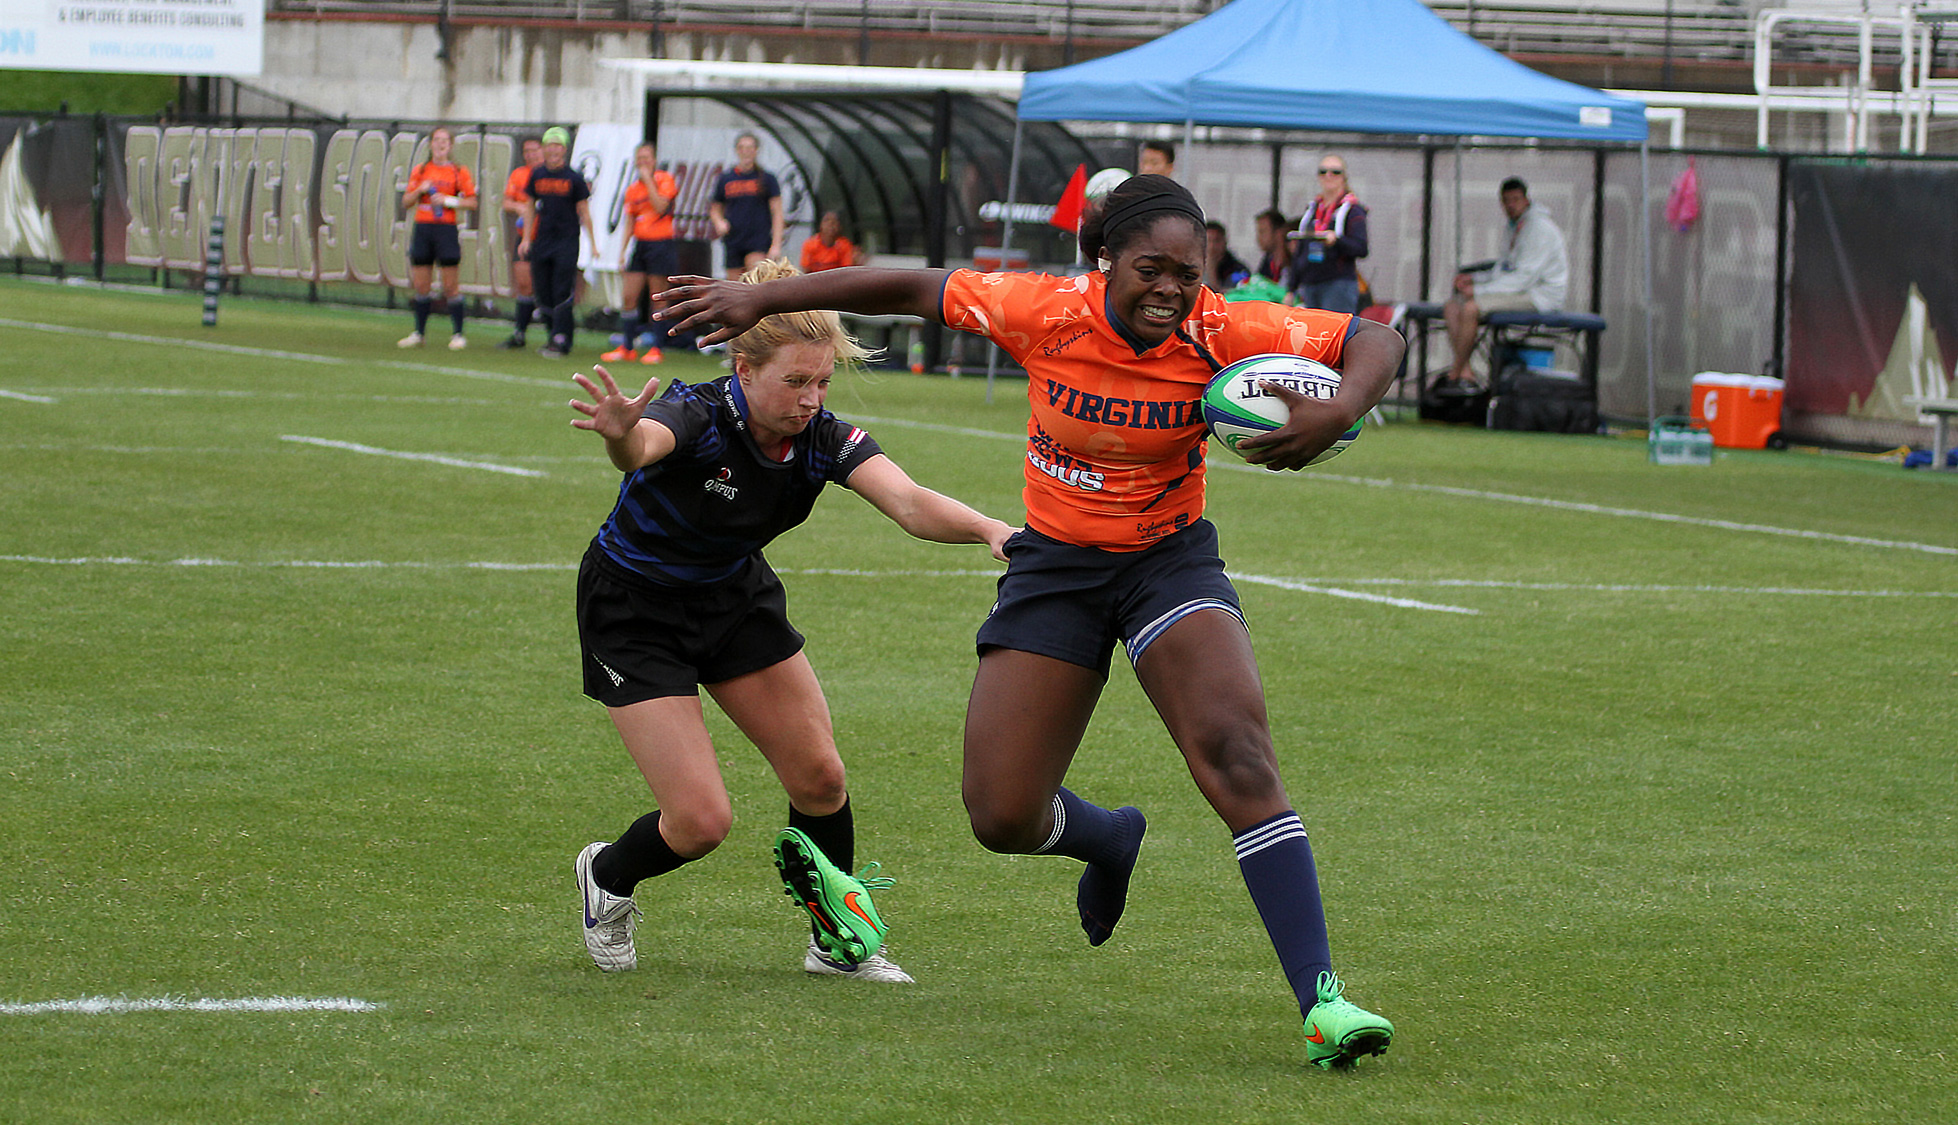 USA College 7s: Nittany Lions on Cup path at College 7s